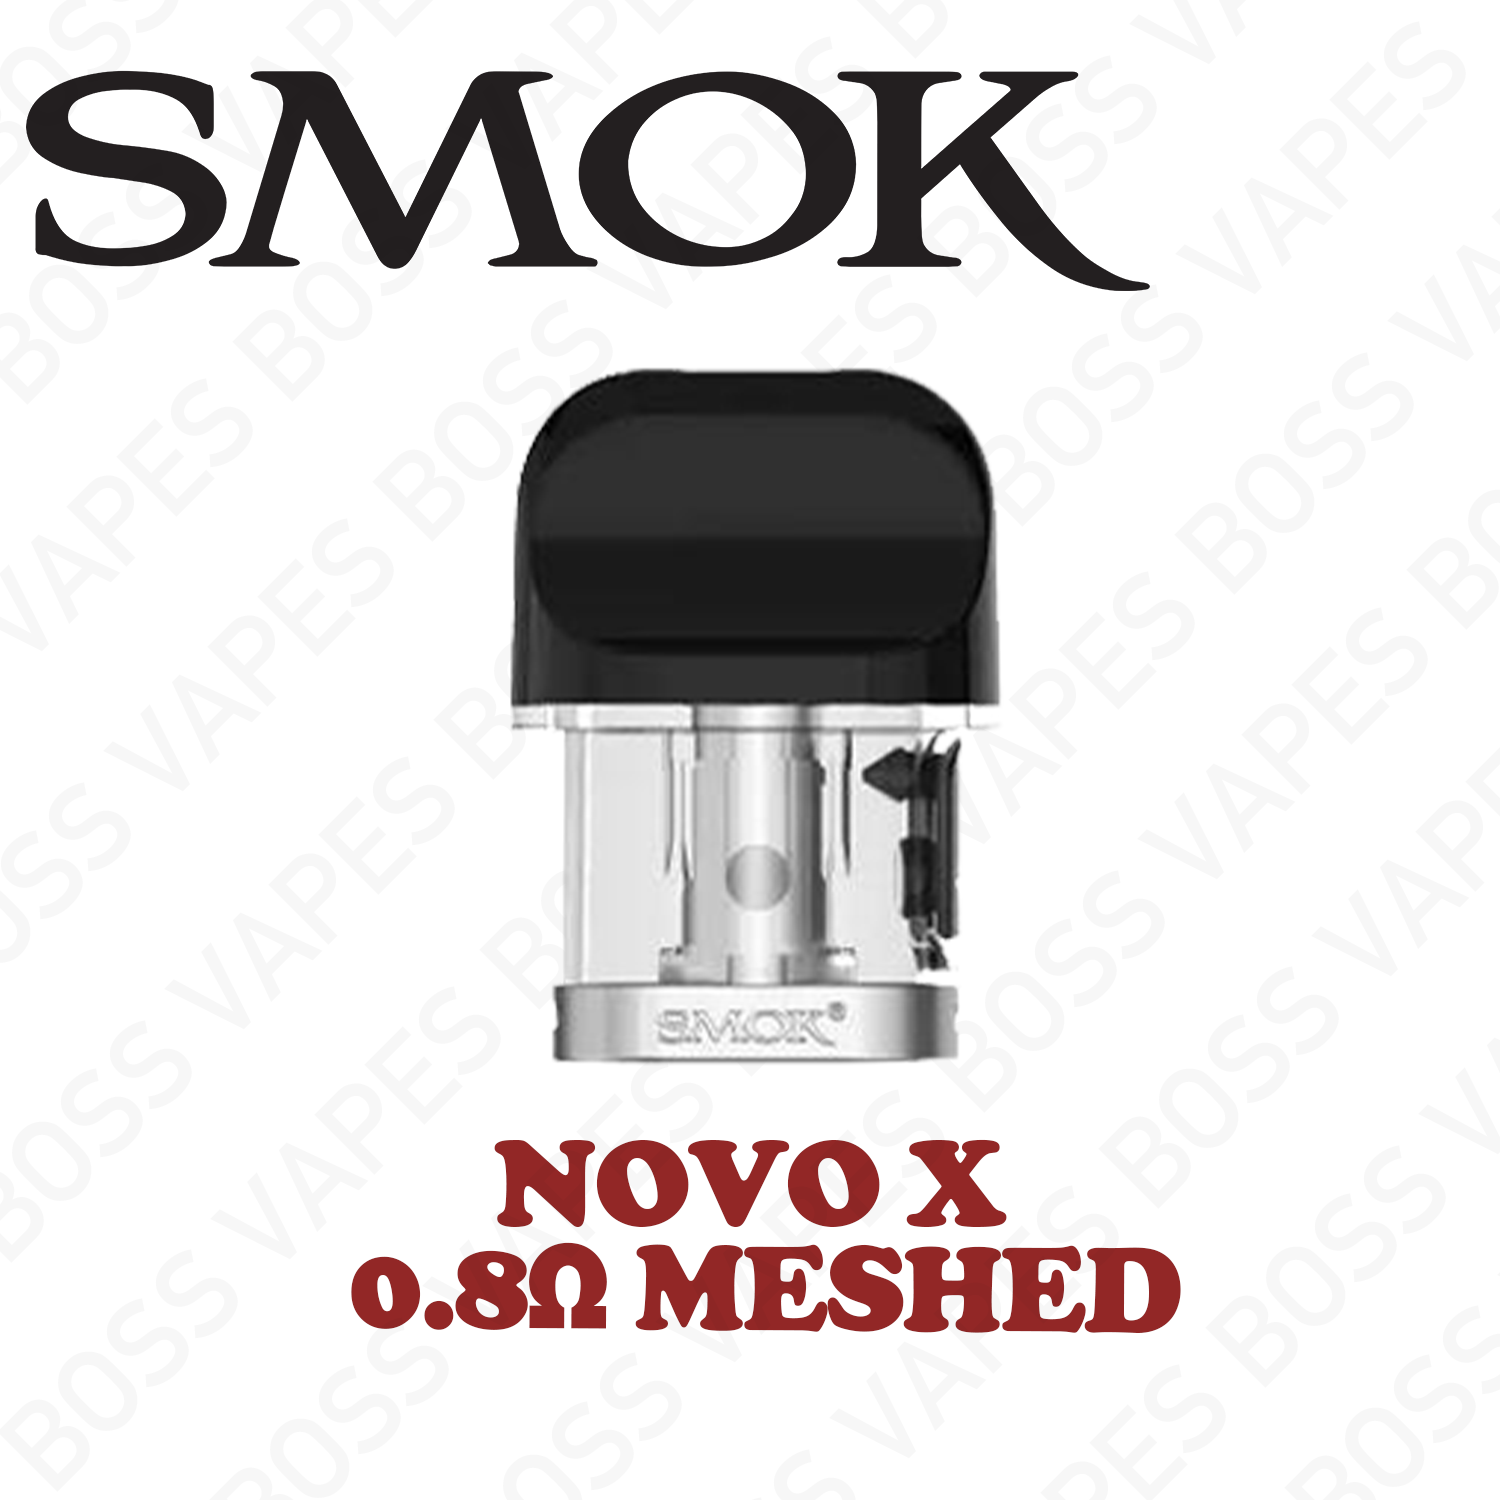 SMOK NOVO X REPLACEMENT POD (Price Per Pod)